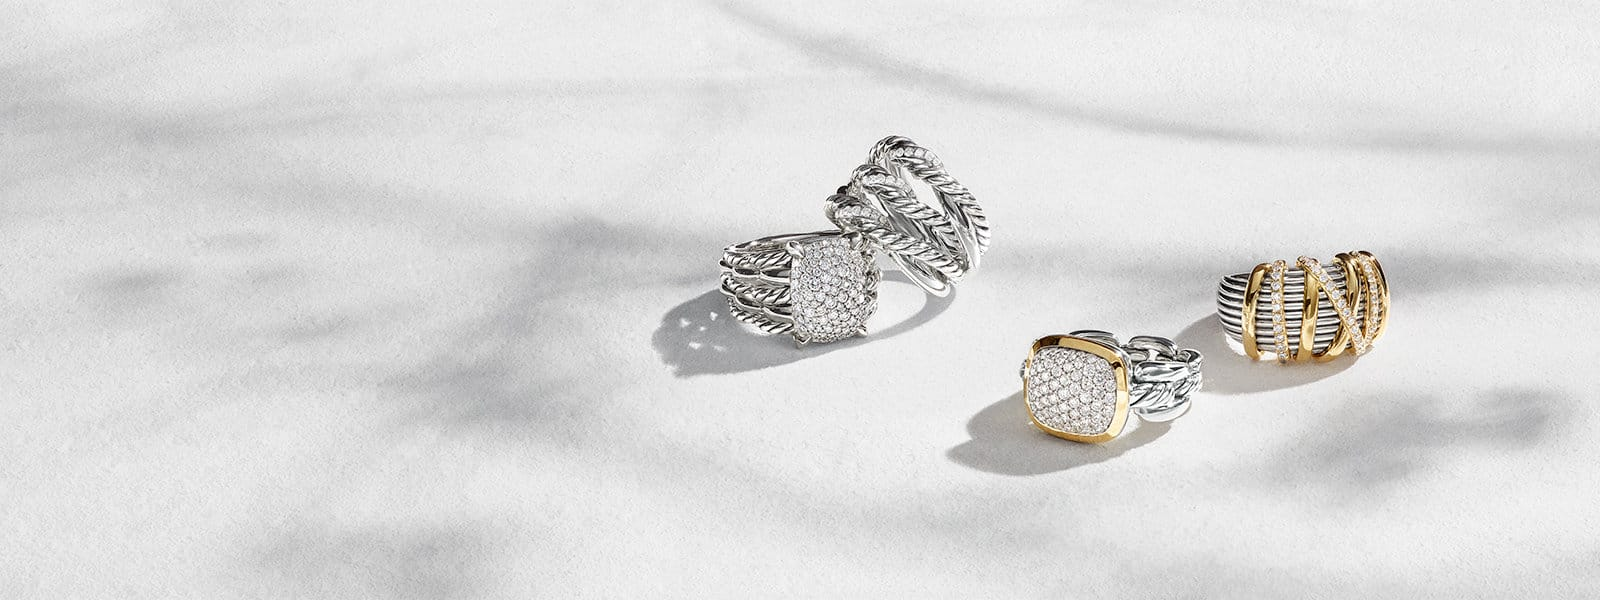 David Yurman Tides, Continuance®, and Helena rings in sterling silver with diamonds or diamonds and 18K yellow gold scattered on a white textured stone with long shadows.